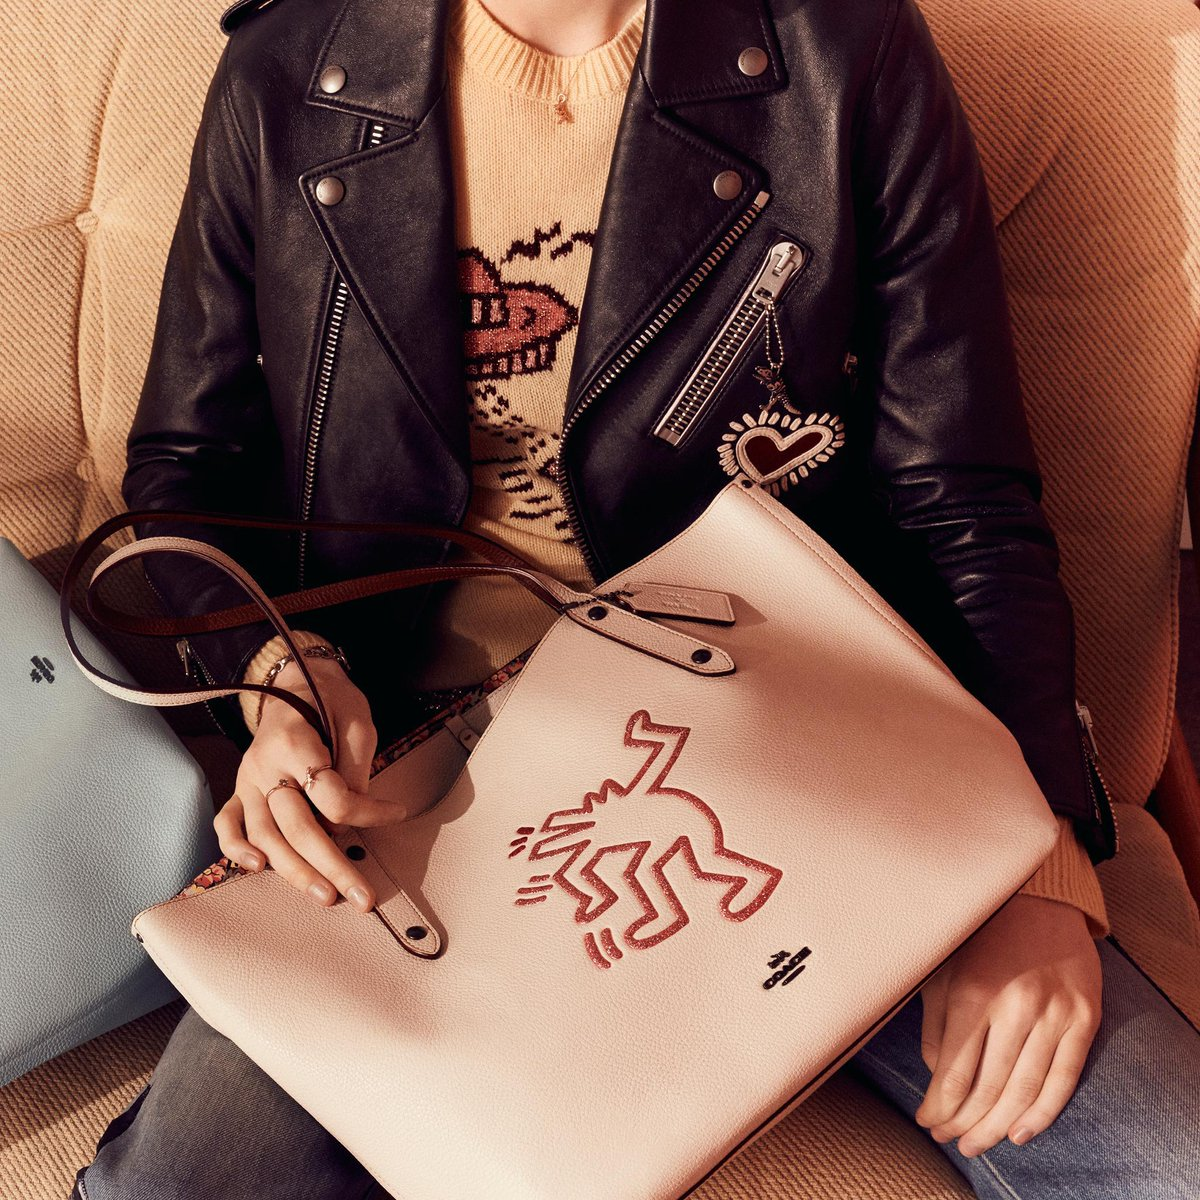 Carry your art. Our special-edition #KeithHaring's Market tote stars the artist's barking dog. #CoachxKeithHaring #CoachNY https://t.co/qlsm83294f